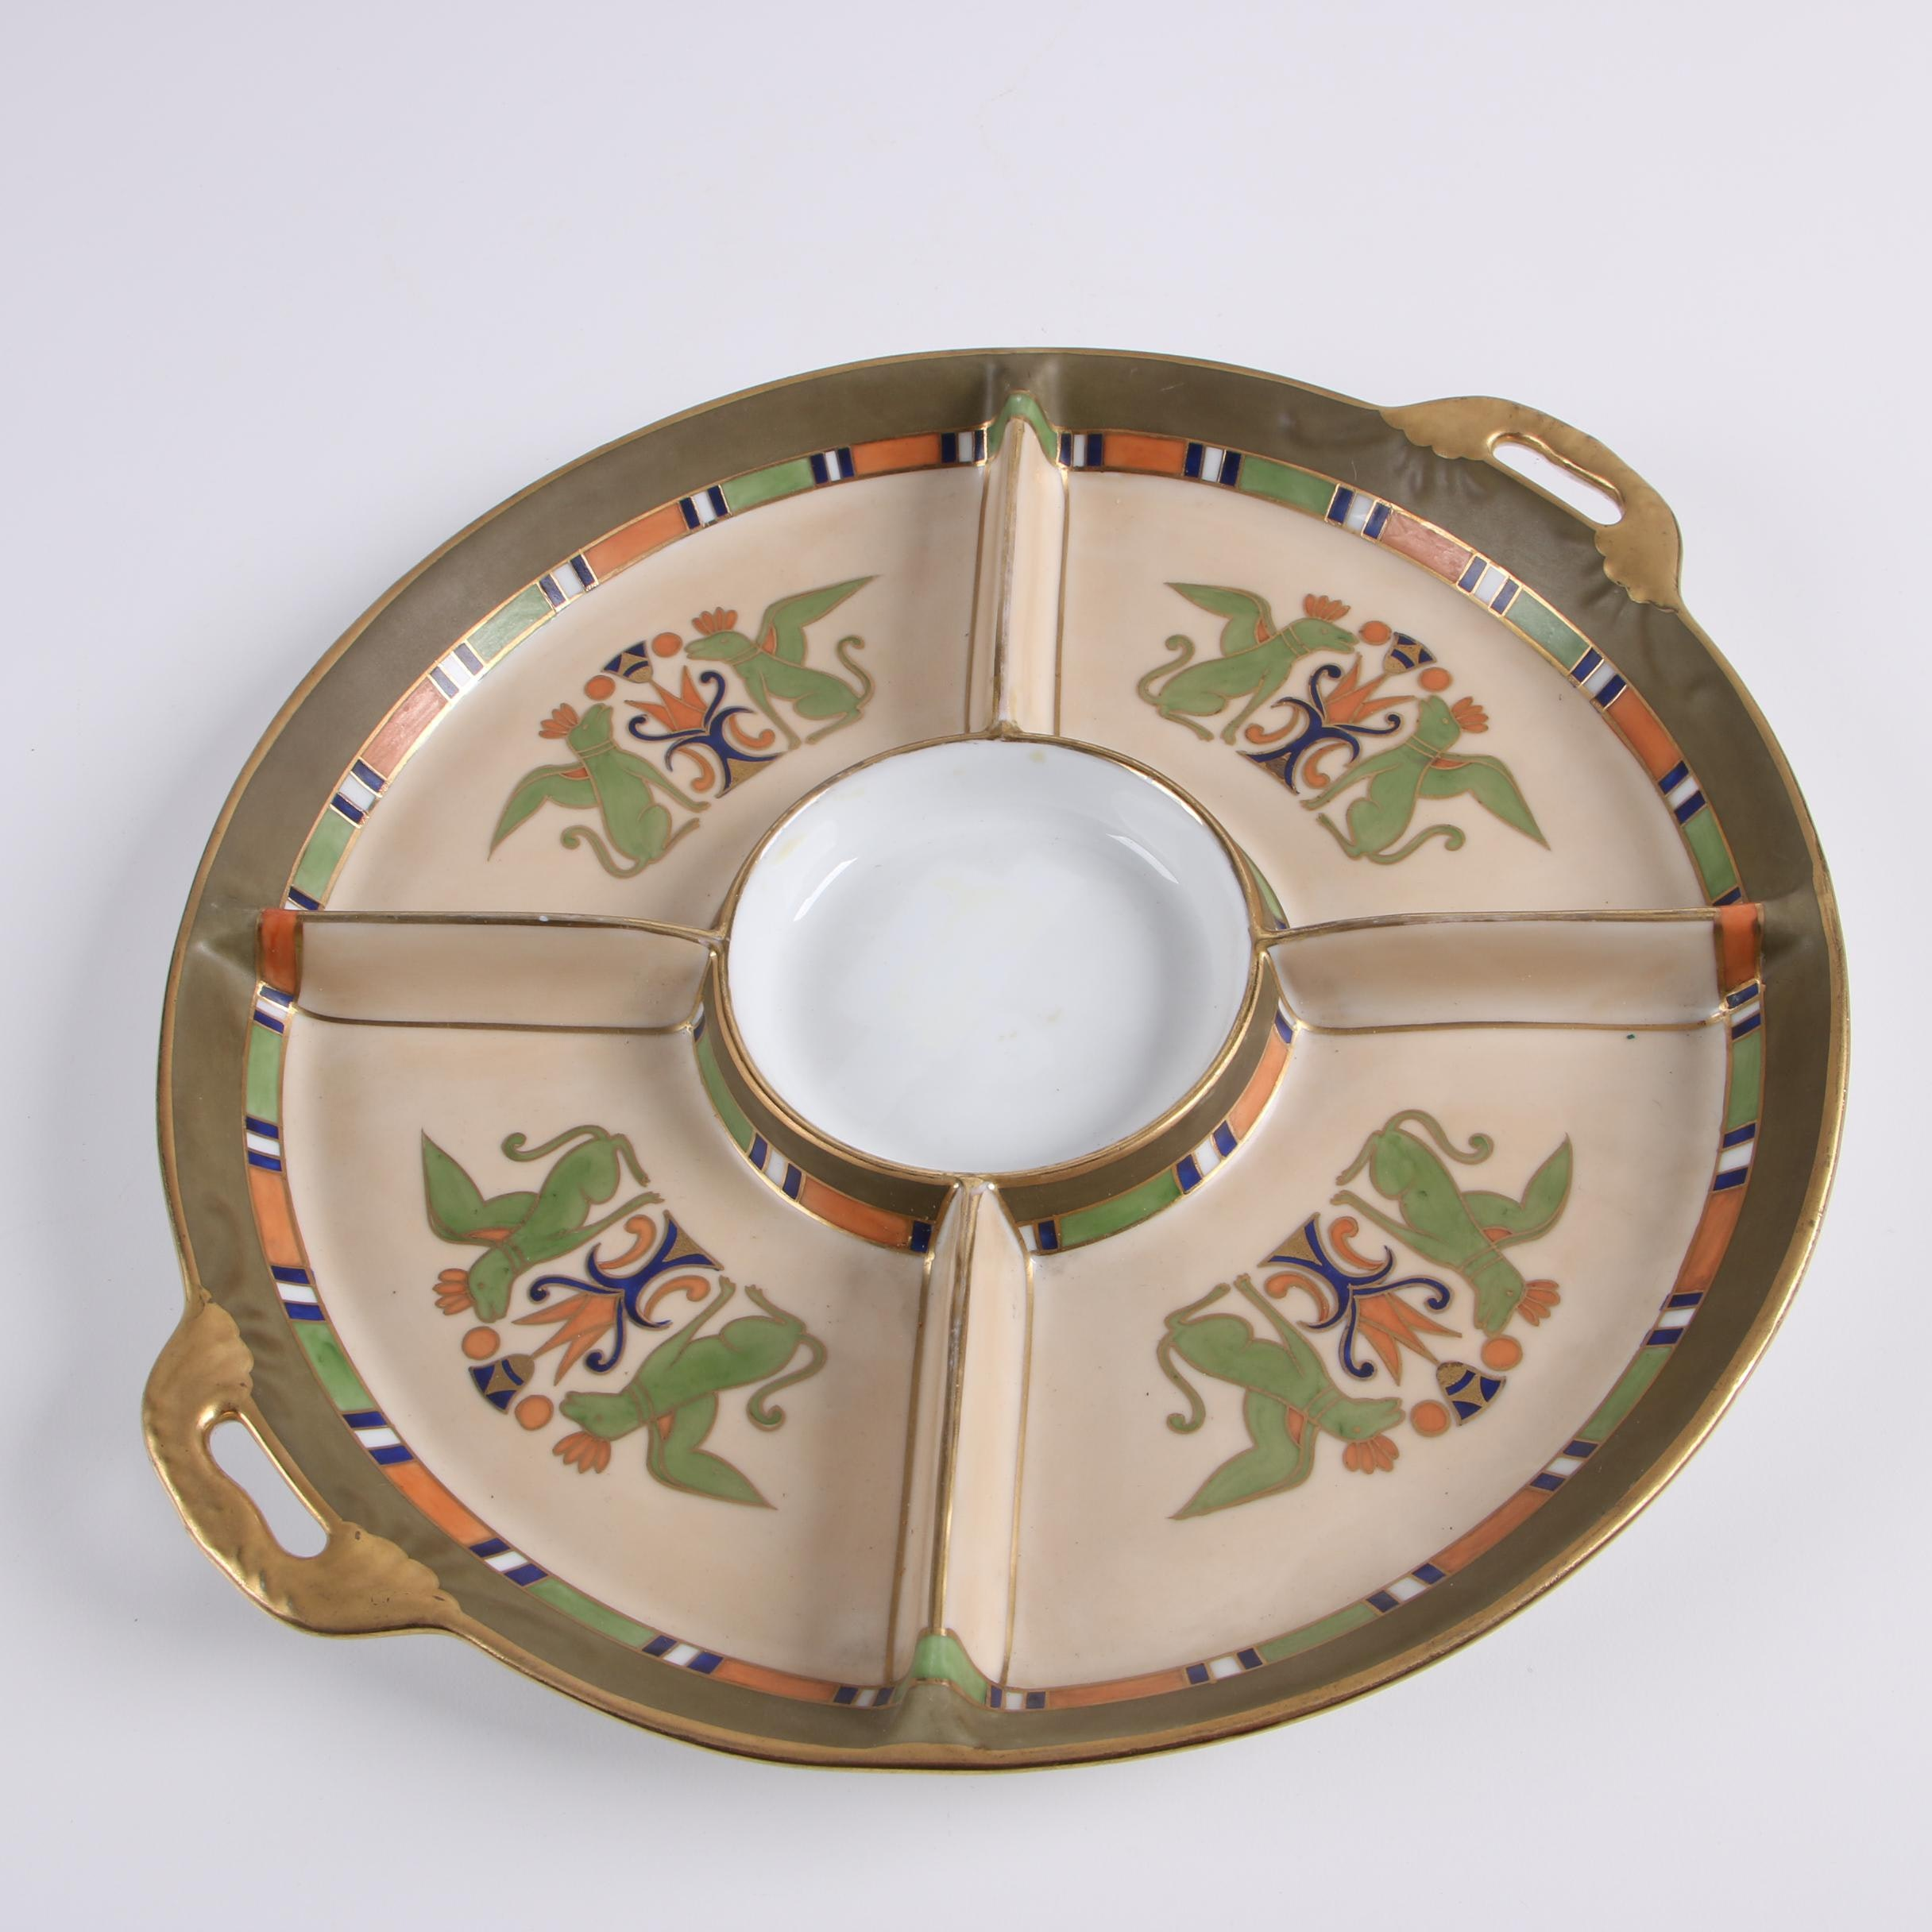 Hand-Painted Noritake Porcelain Divided Serving Dish